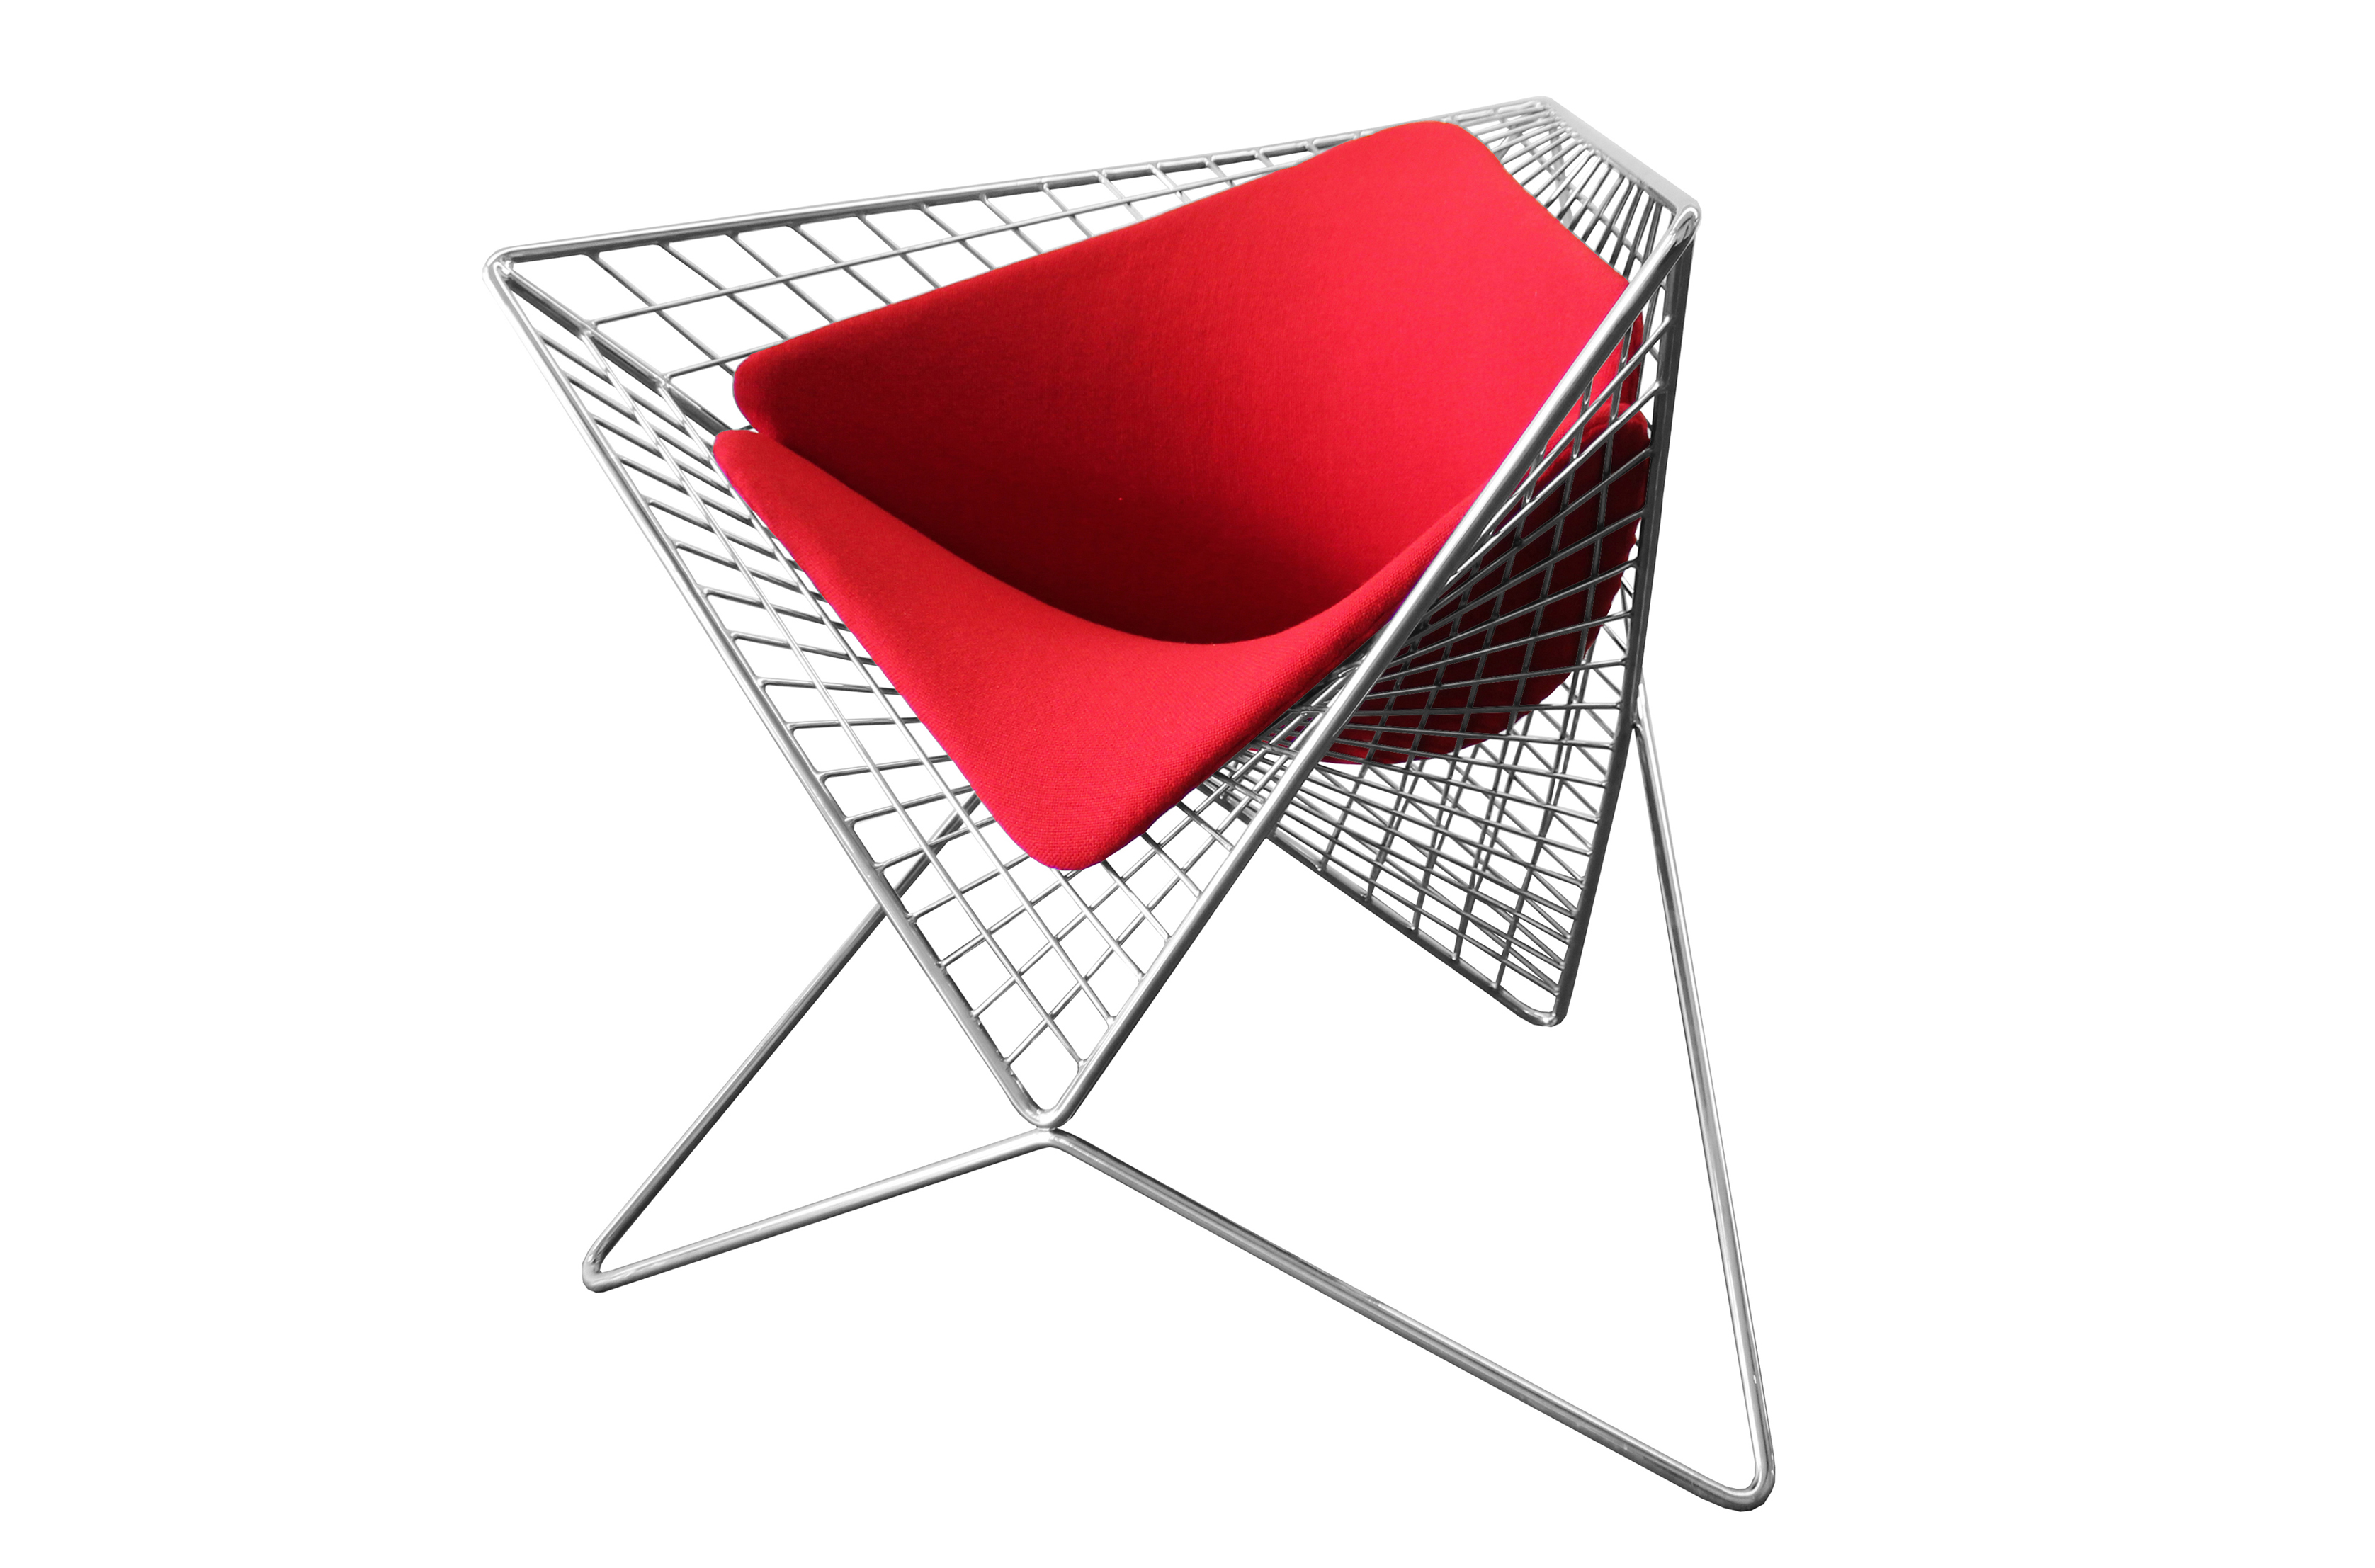 Parabola Chairs Wins Red Dot And Good Design Awards   EVolo ...